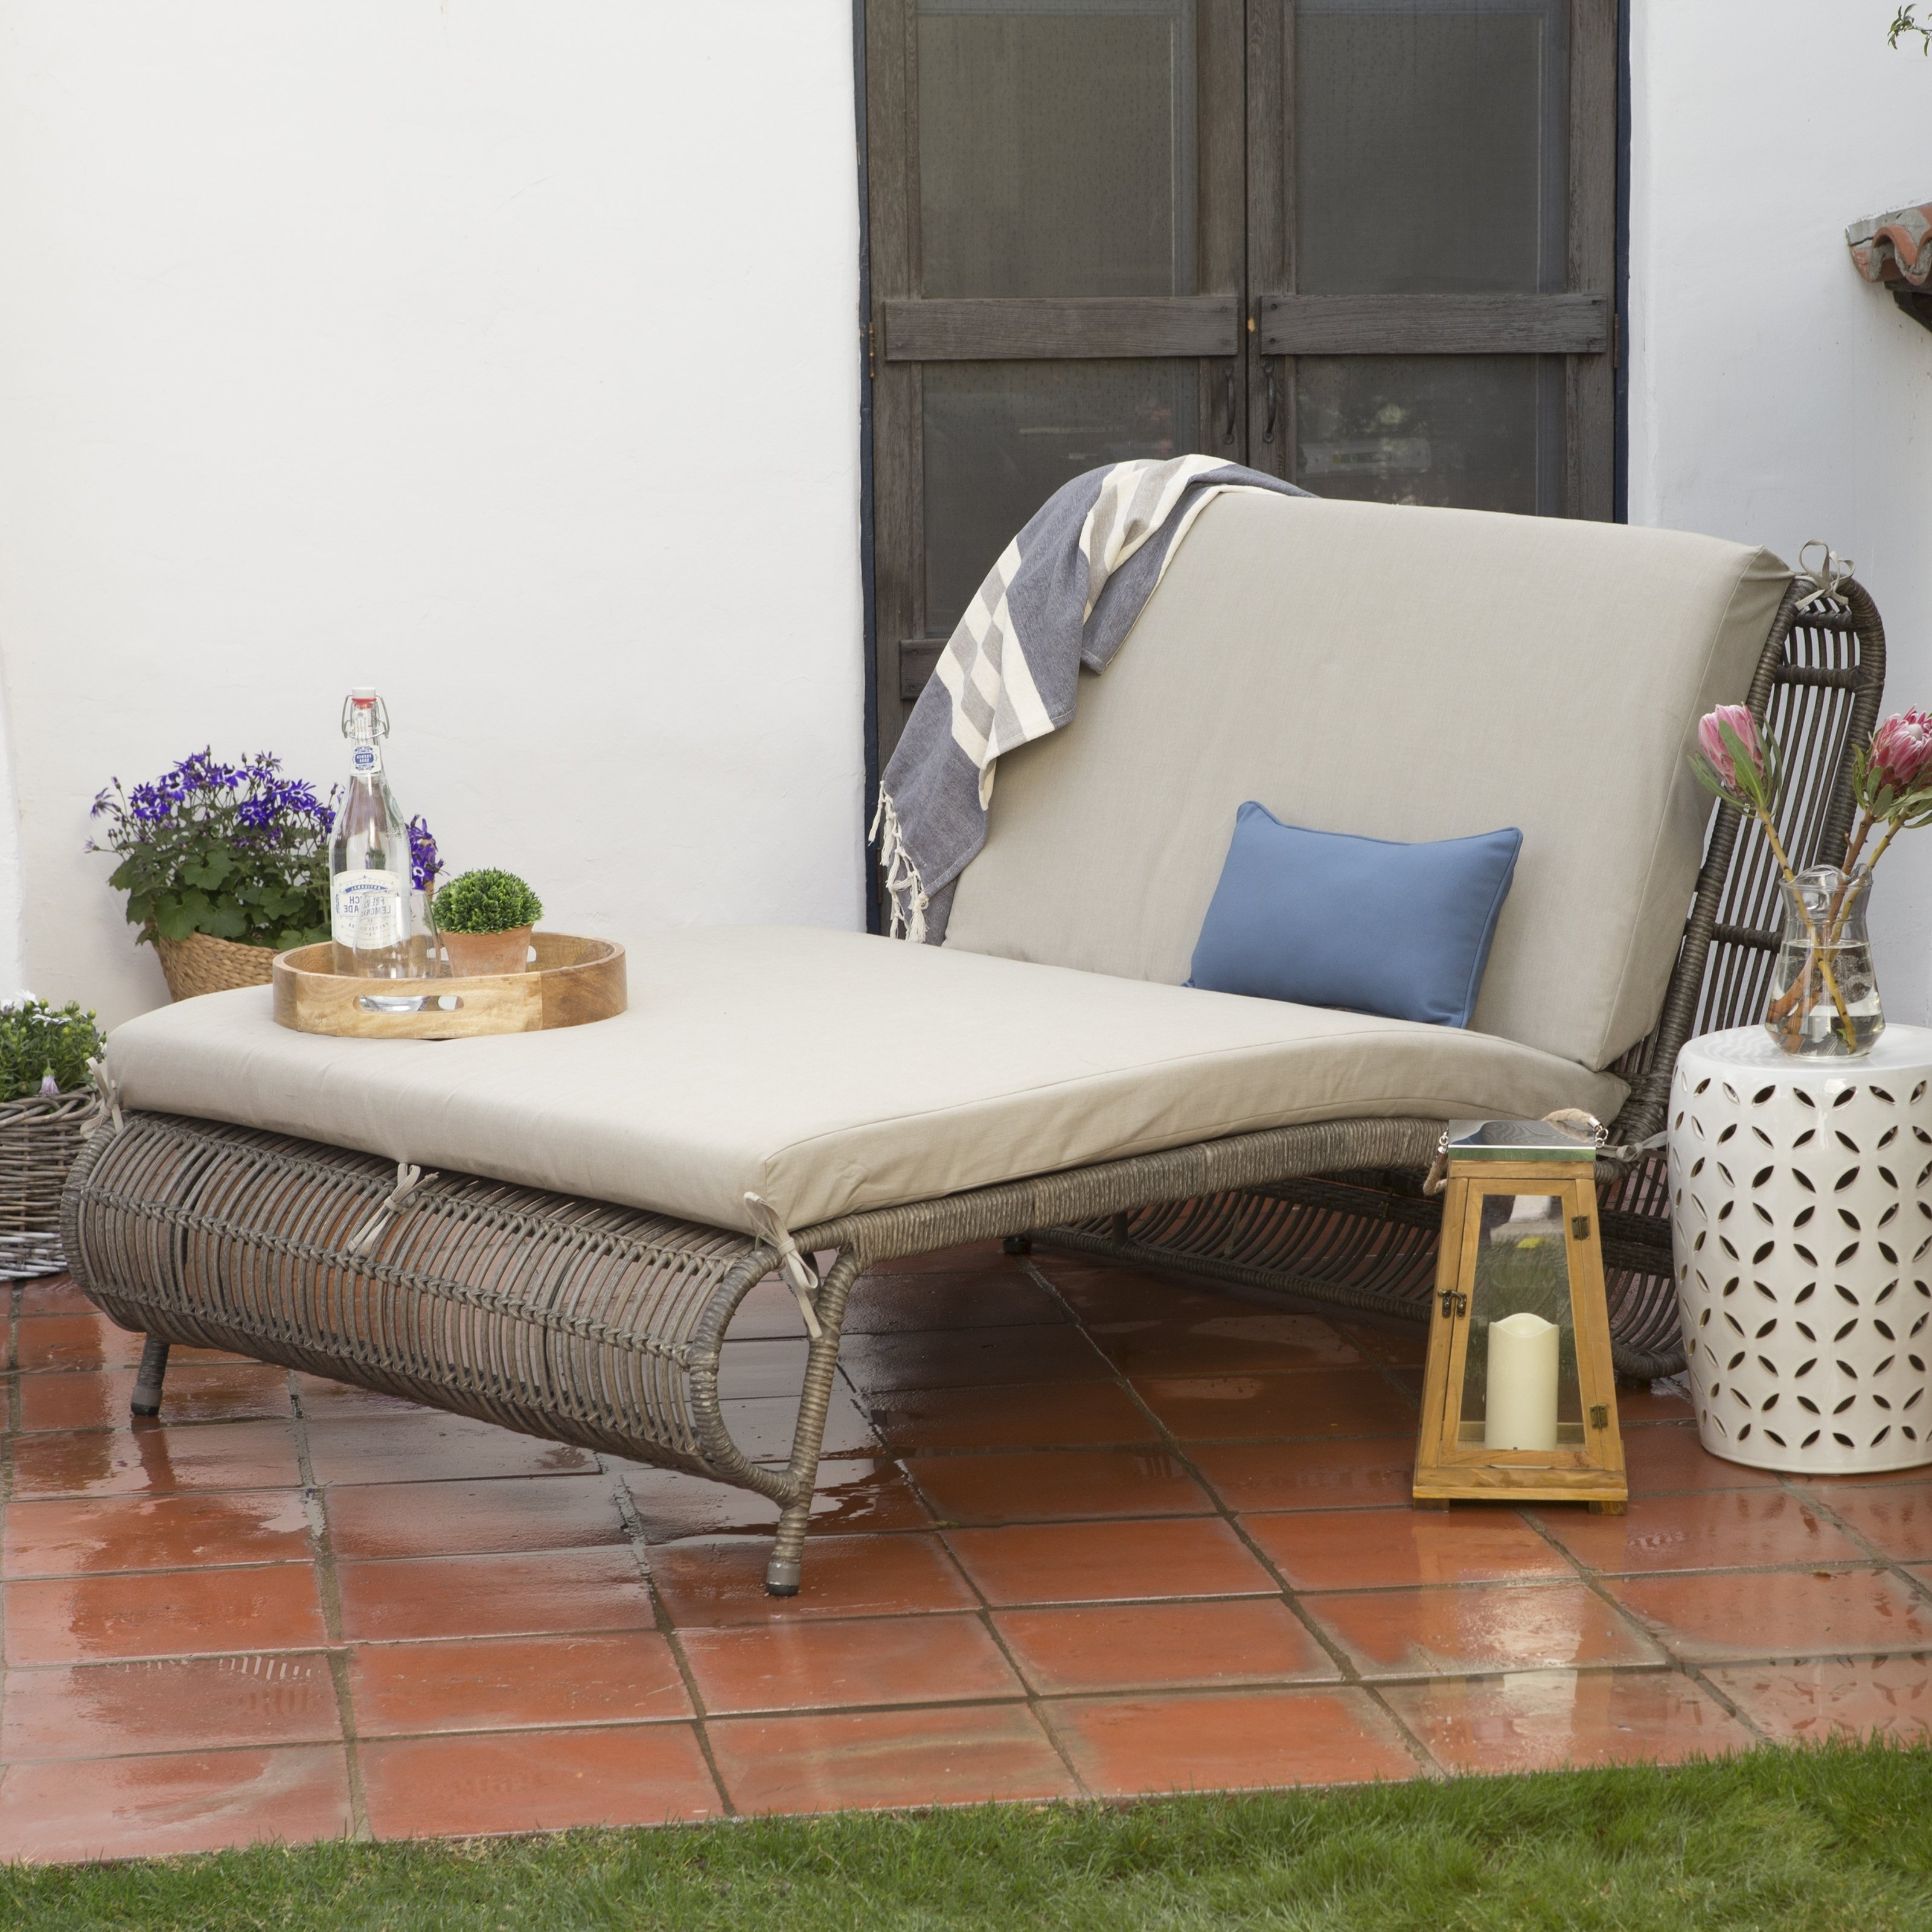 Double Outdoor Chaise Lounges Throughout Well Known Lounge Chair : Lounge Discount Outdoor Chaise Lounge Outdoor (View 7 of 15)